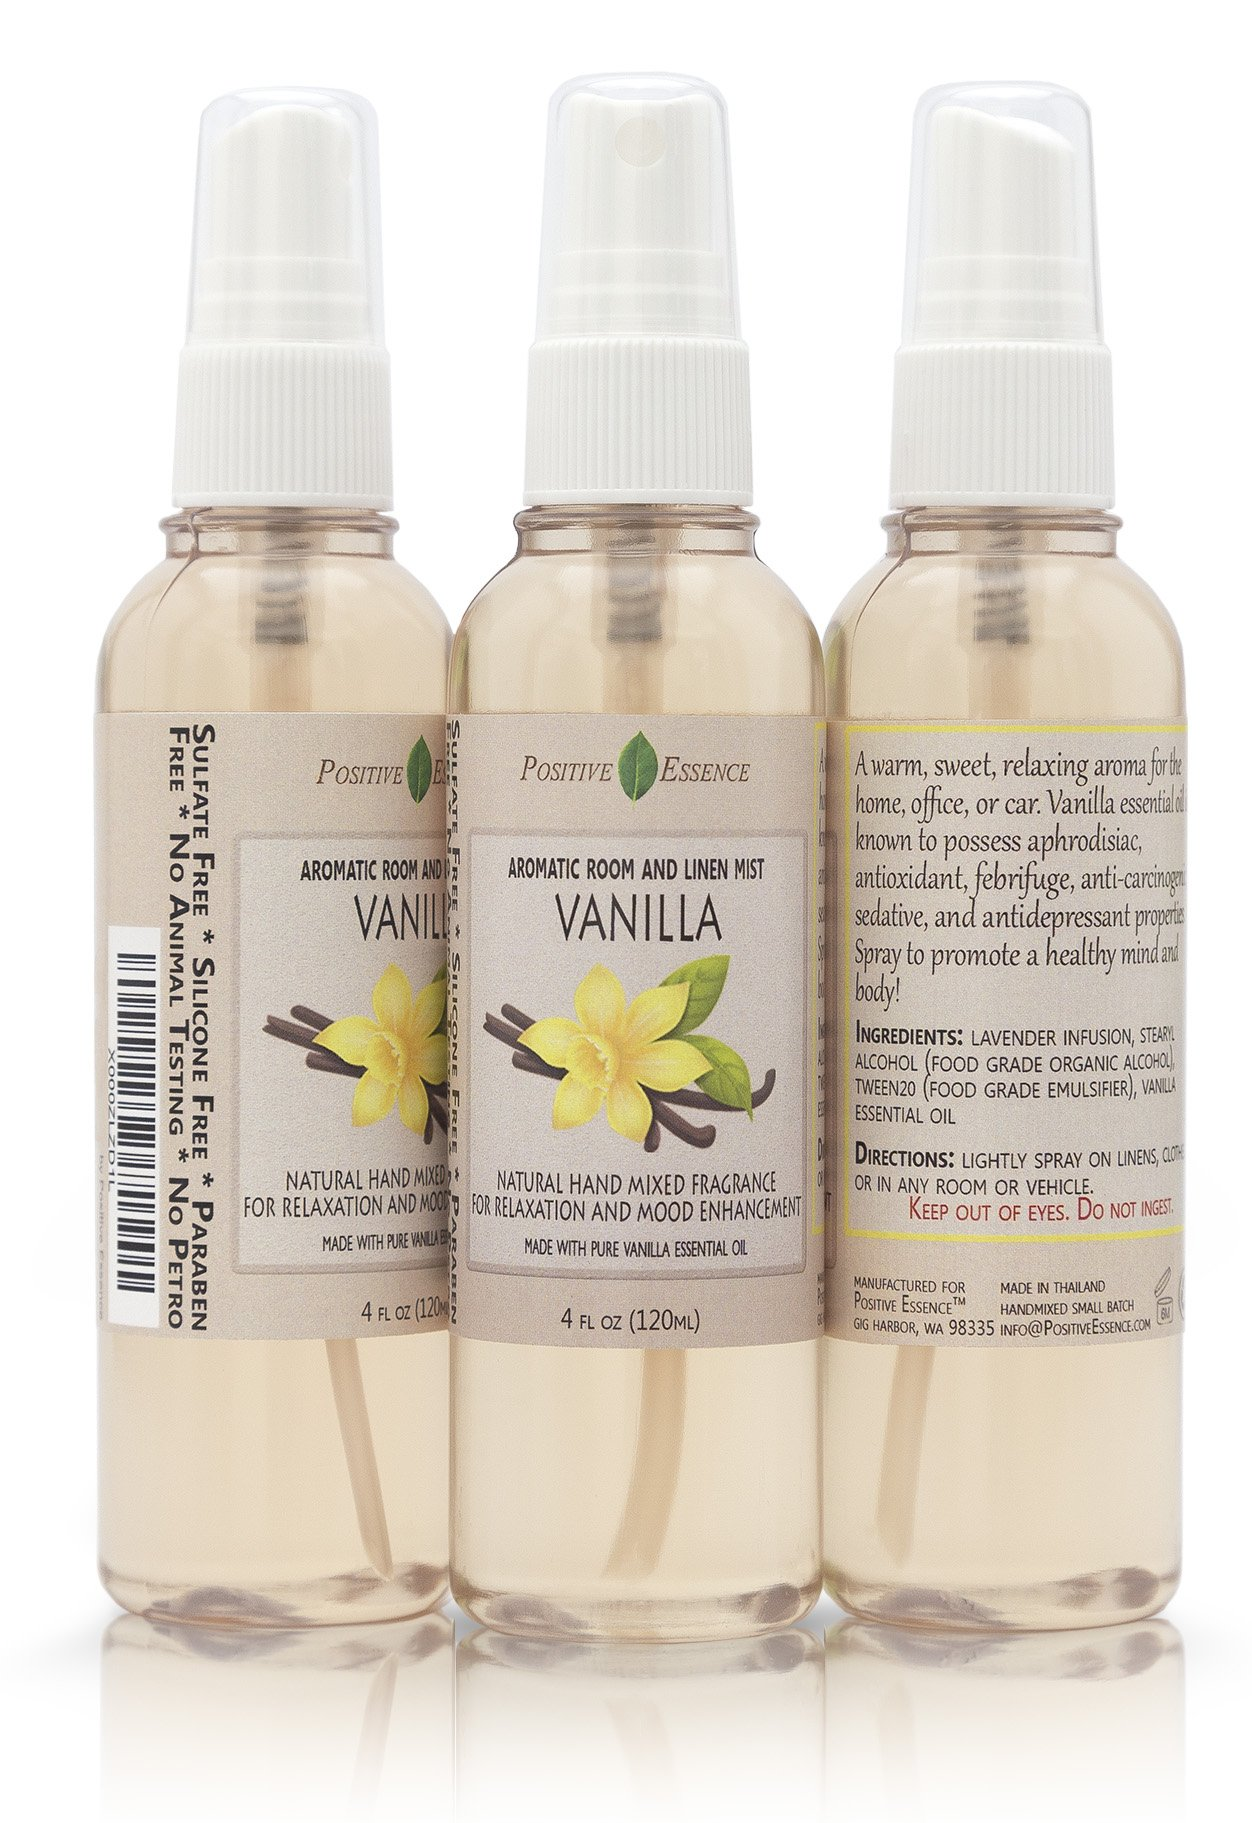 Positive Essence Vanilla Linen & Room Spray, Natural Aromatic Mist Made with Pure Vanilla Essential Oil, Relax Your Body & Mind, Perfect as a Bathroom Air Freshener Odor Eliminator by Positive Essence (Image #2)